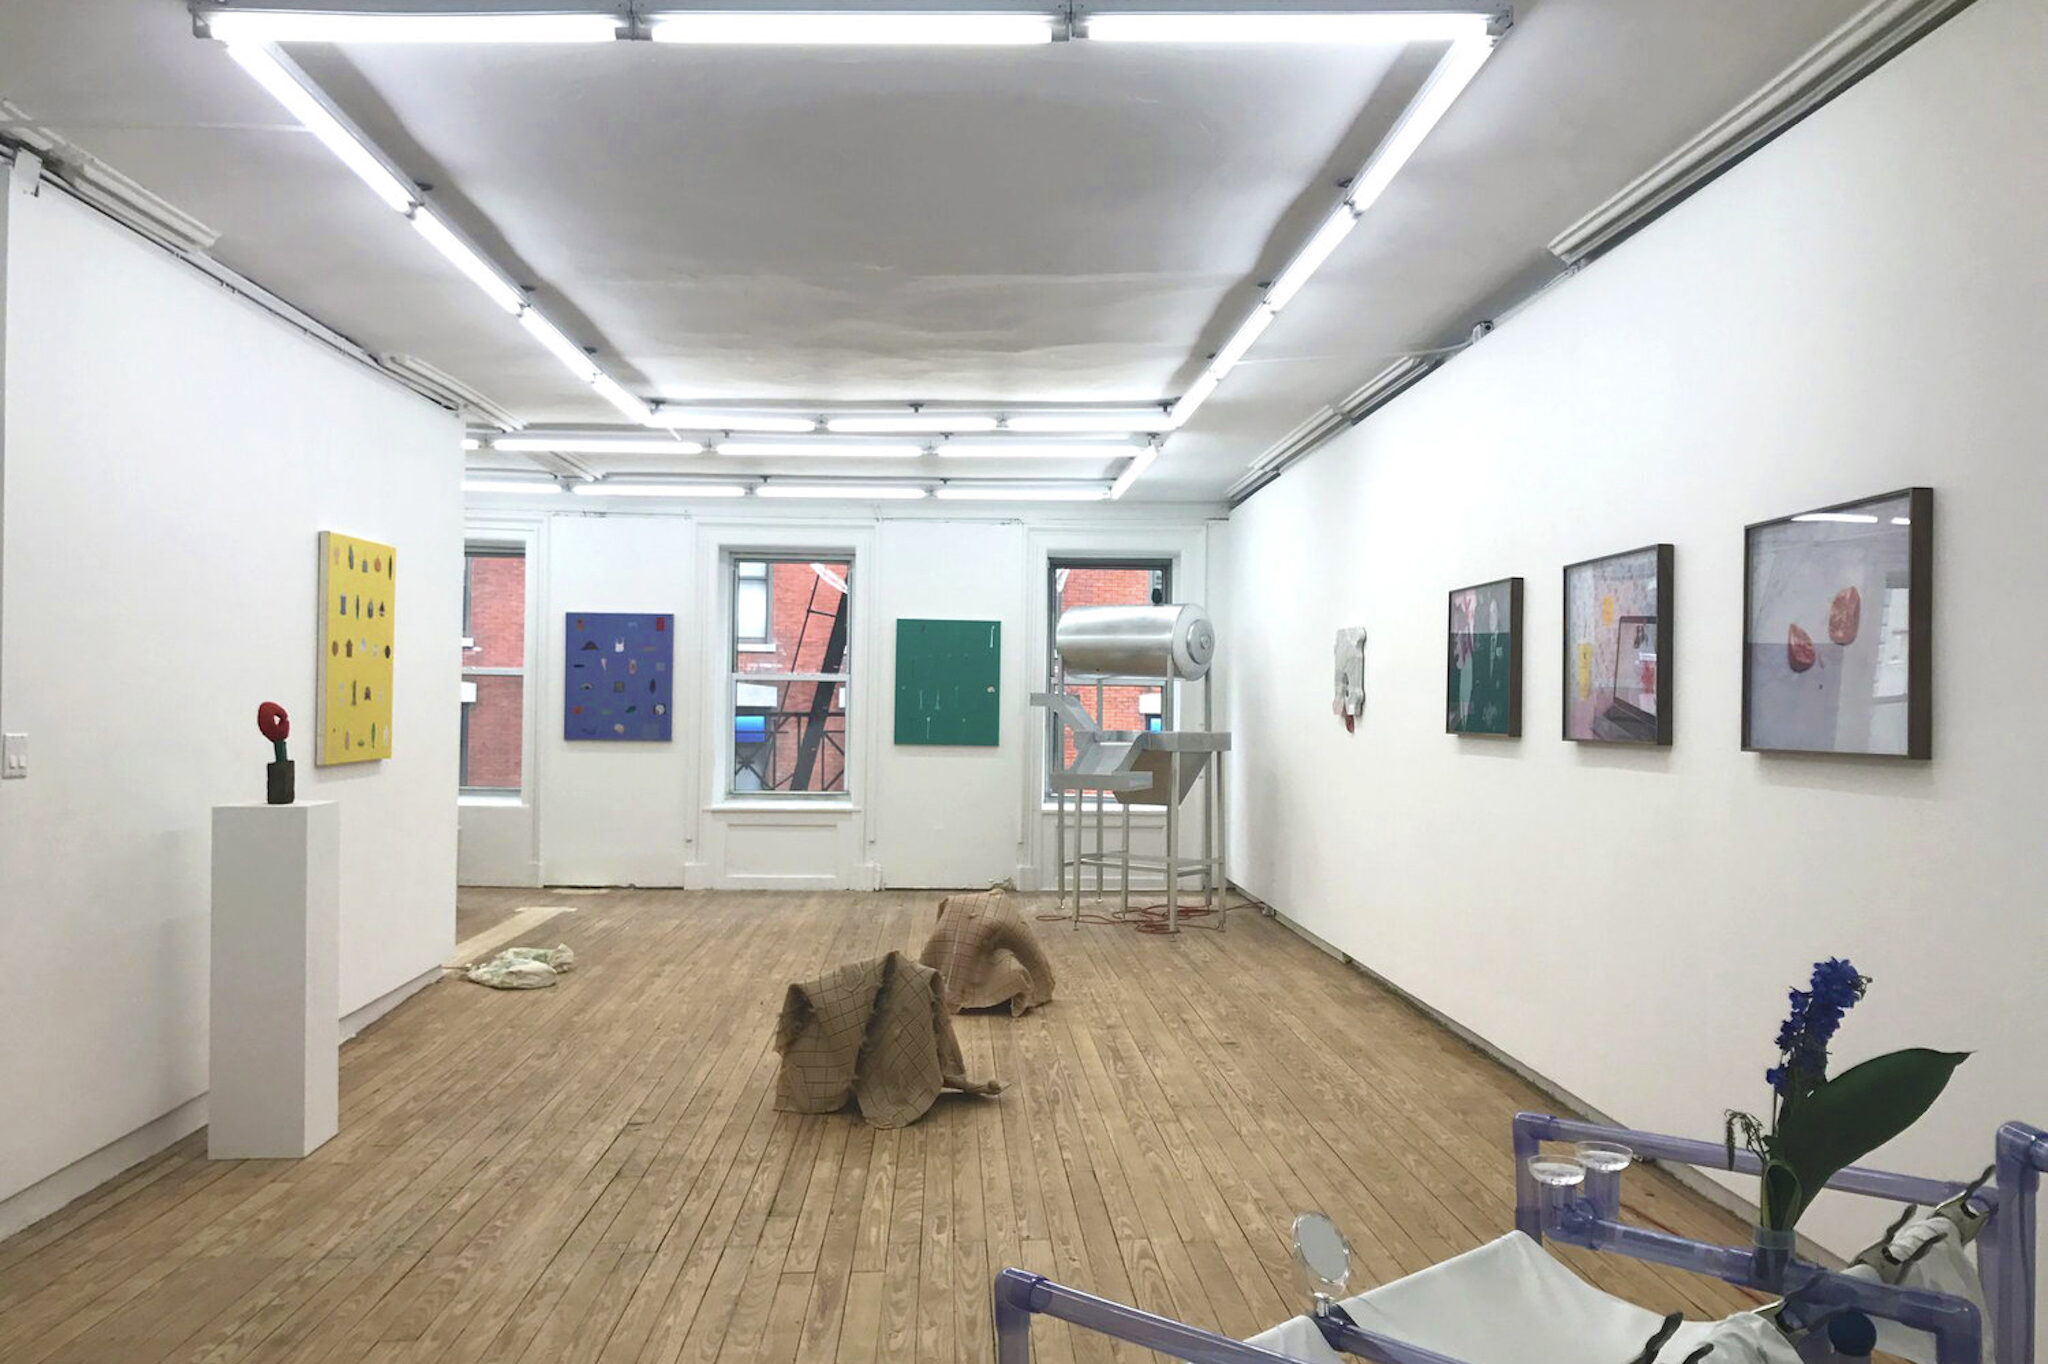 Best Art Galleries To Be Found On The Lower East Side In NYC